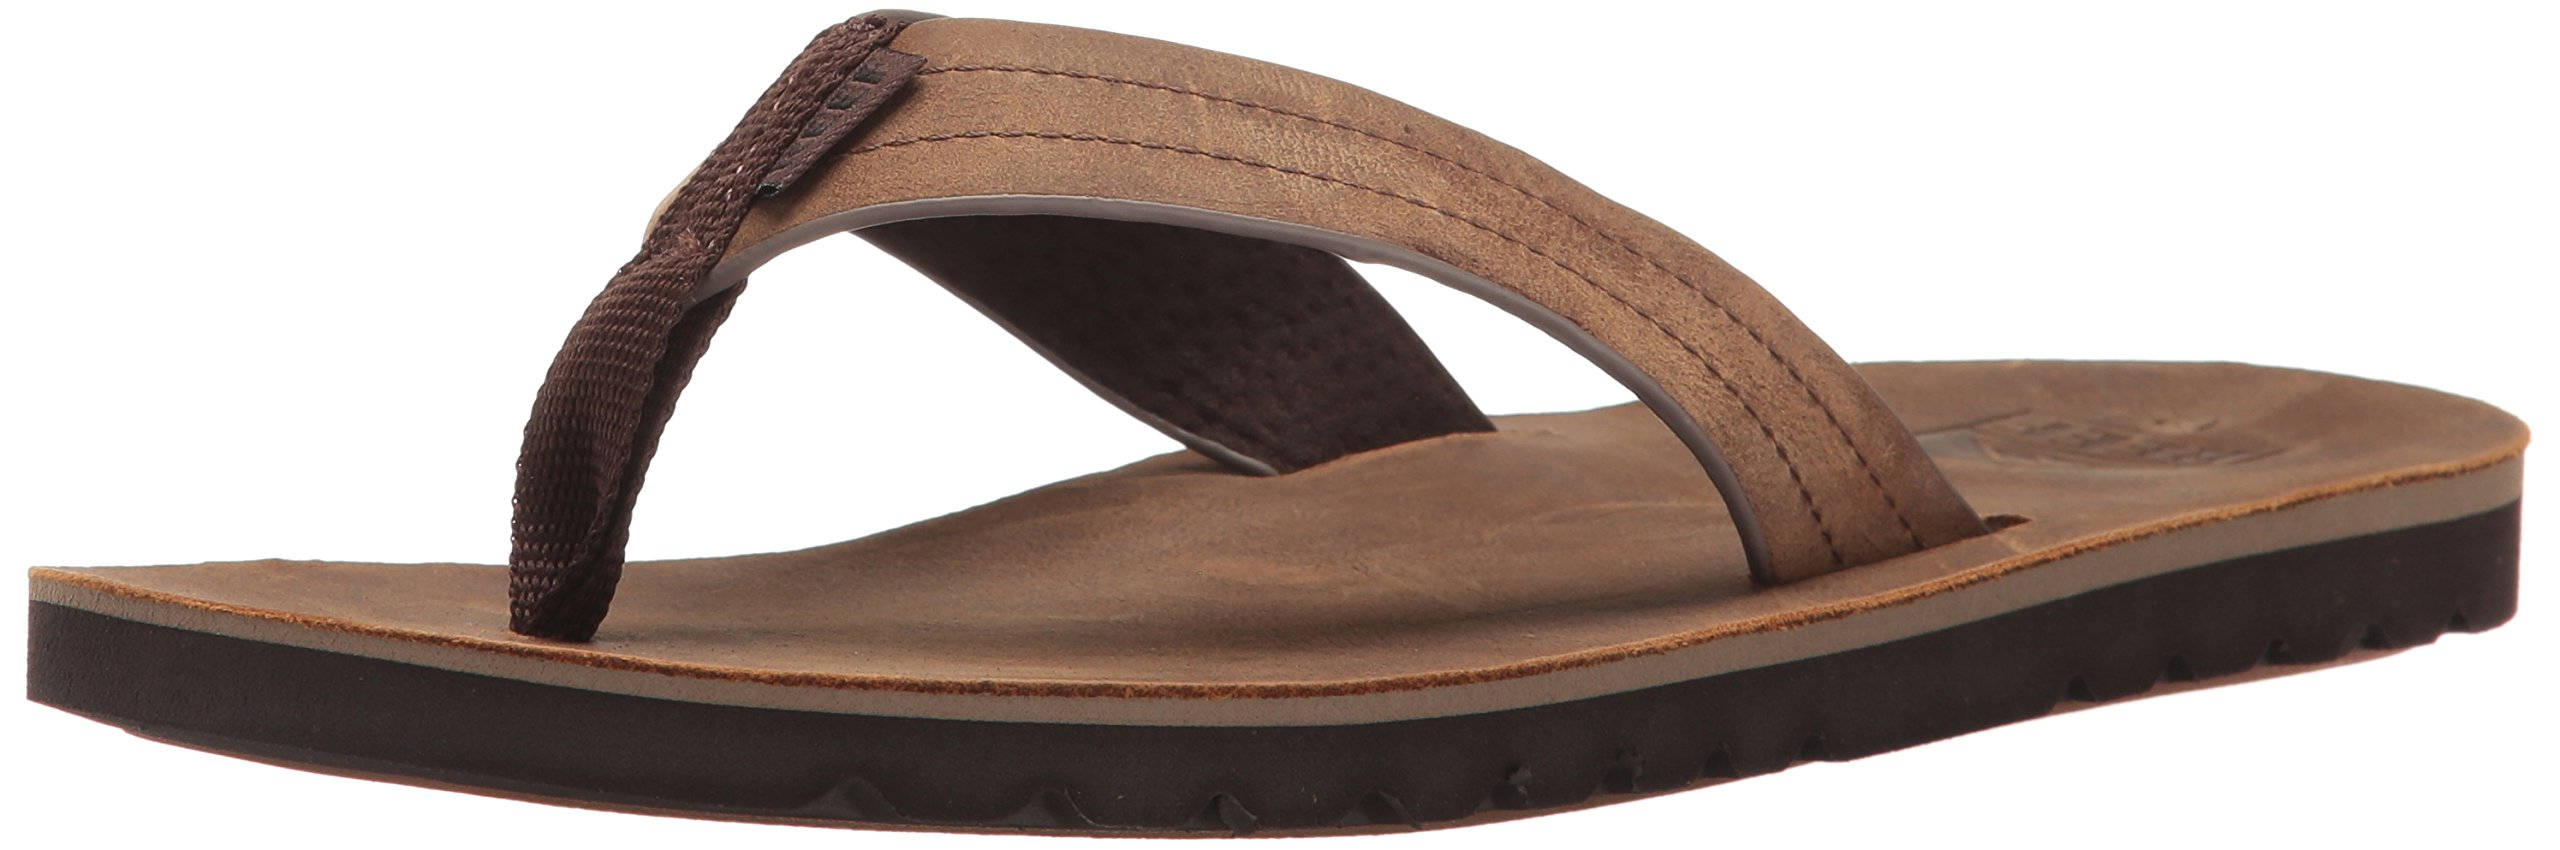 Reef Men's Voyage Le Sandal, Dark Brown, 11 M US